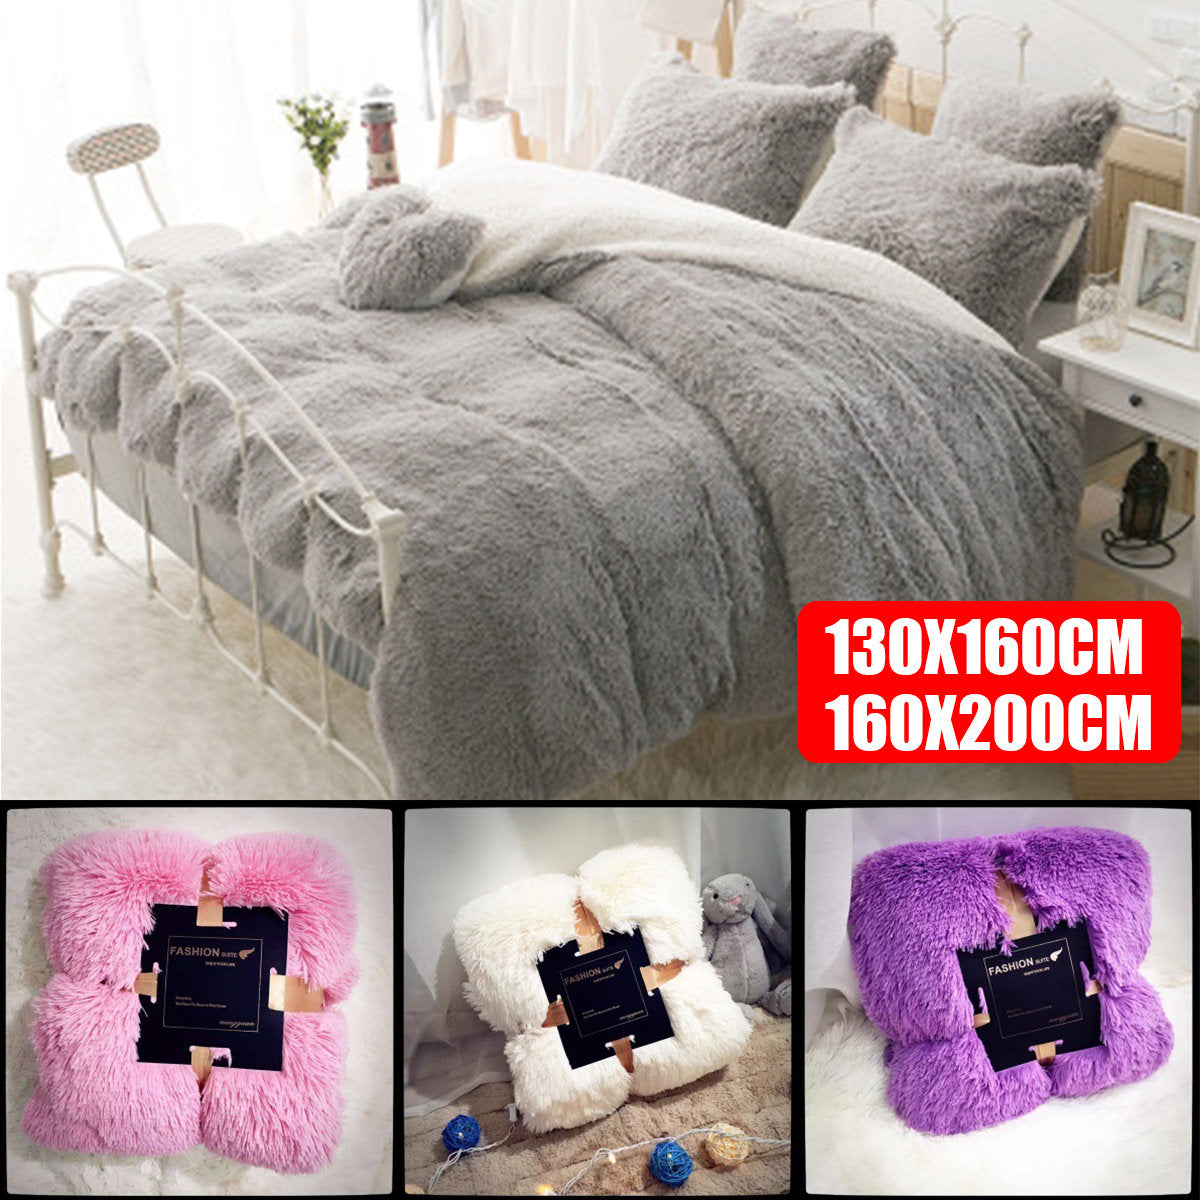 200cm Long Plush Ultra Soft Warm Sofa Cover Bed Cover Set Kids Teens Throw Blanket Reversible Bedspread